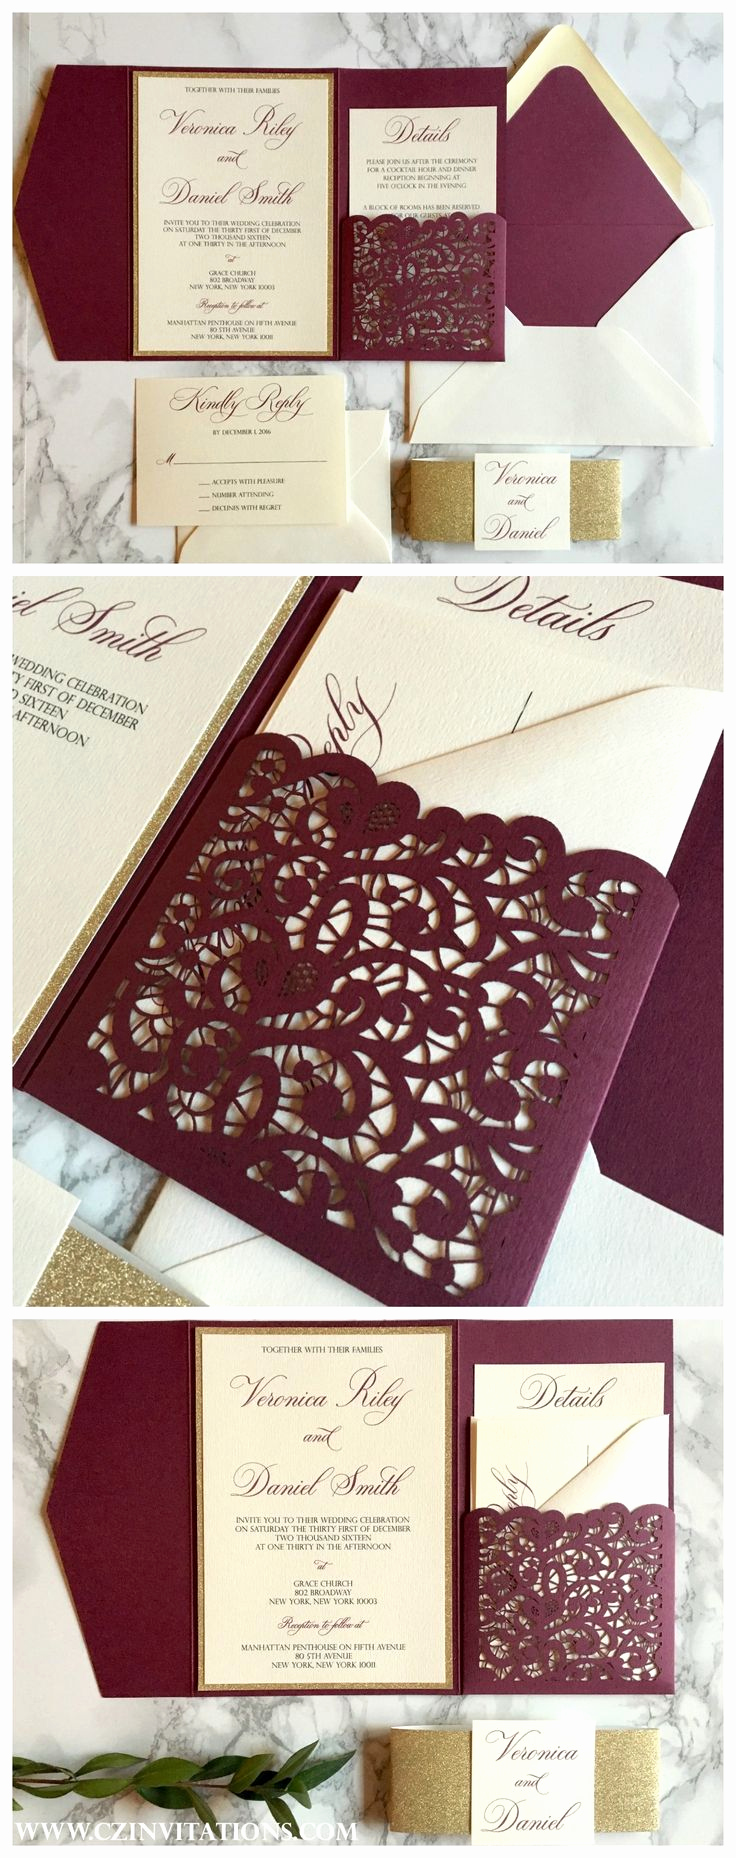 Wedding Invitation Ideas Pinterest Inspirational Best 25 Wedding Invitations Ideas On Pinterest